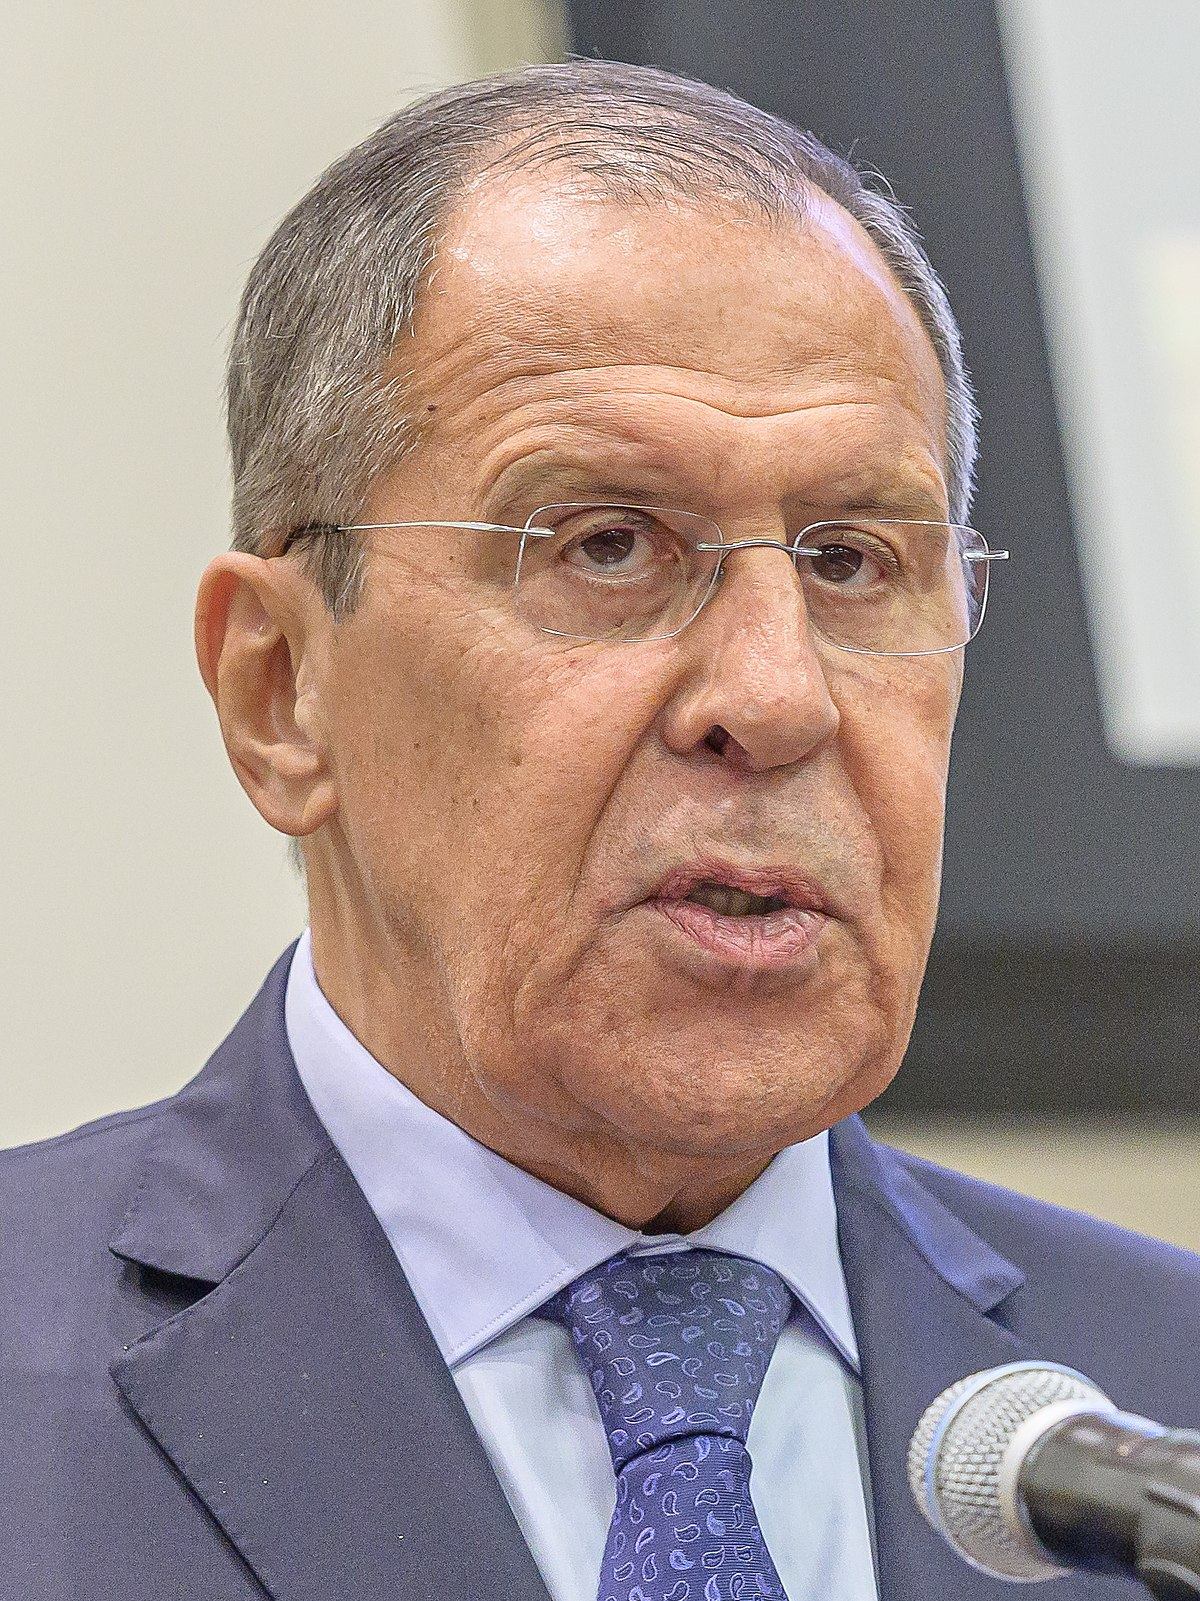 Sergey Lavrov, Minister of Foreign Affairs for the Russian Federation, is seen during the 2019 Comprehensive Test-Ban Treaty Article XIV Conference in Conference Room 2 at United Nations Headquarters in New York, NY, USA on September 25, 2019.